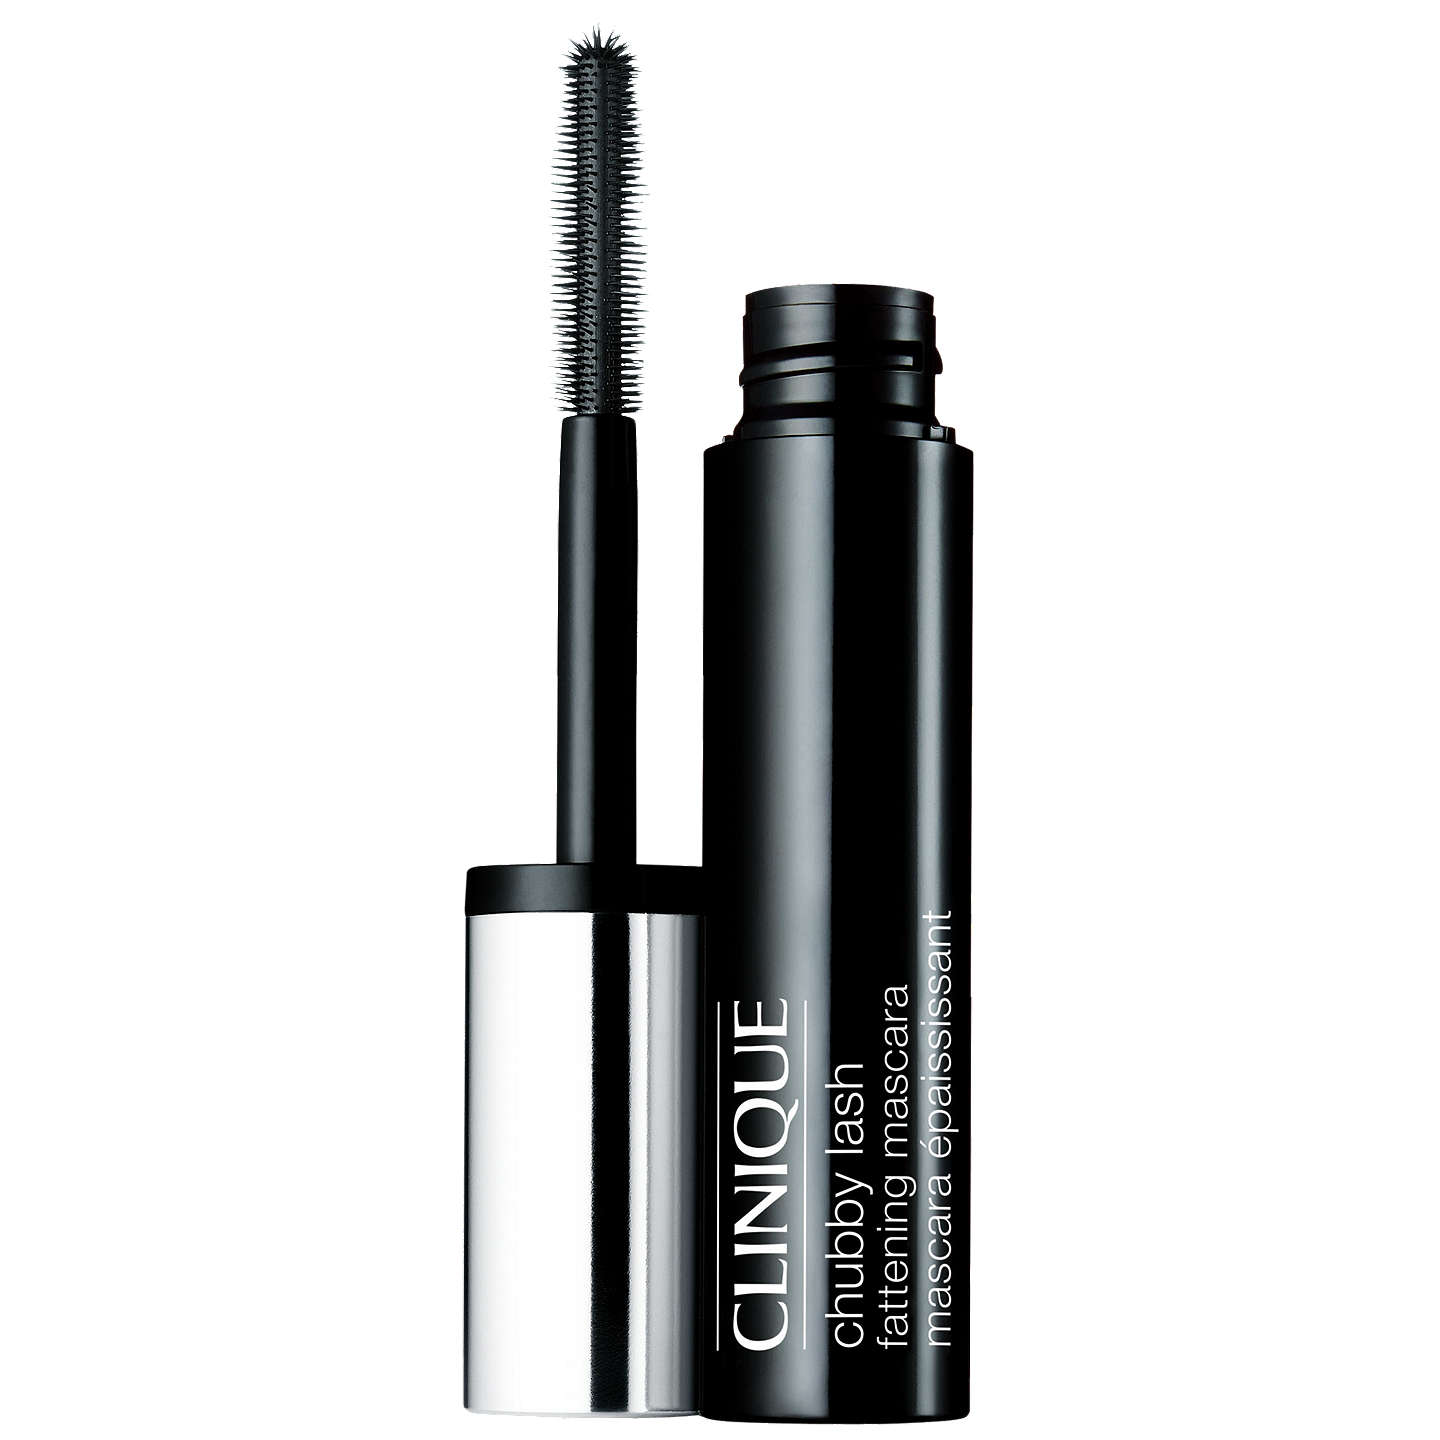 BuyClinique Chubby Lash Mascara, Jet Online at johnlewis.com